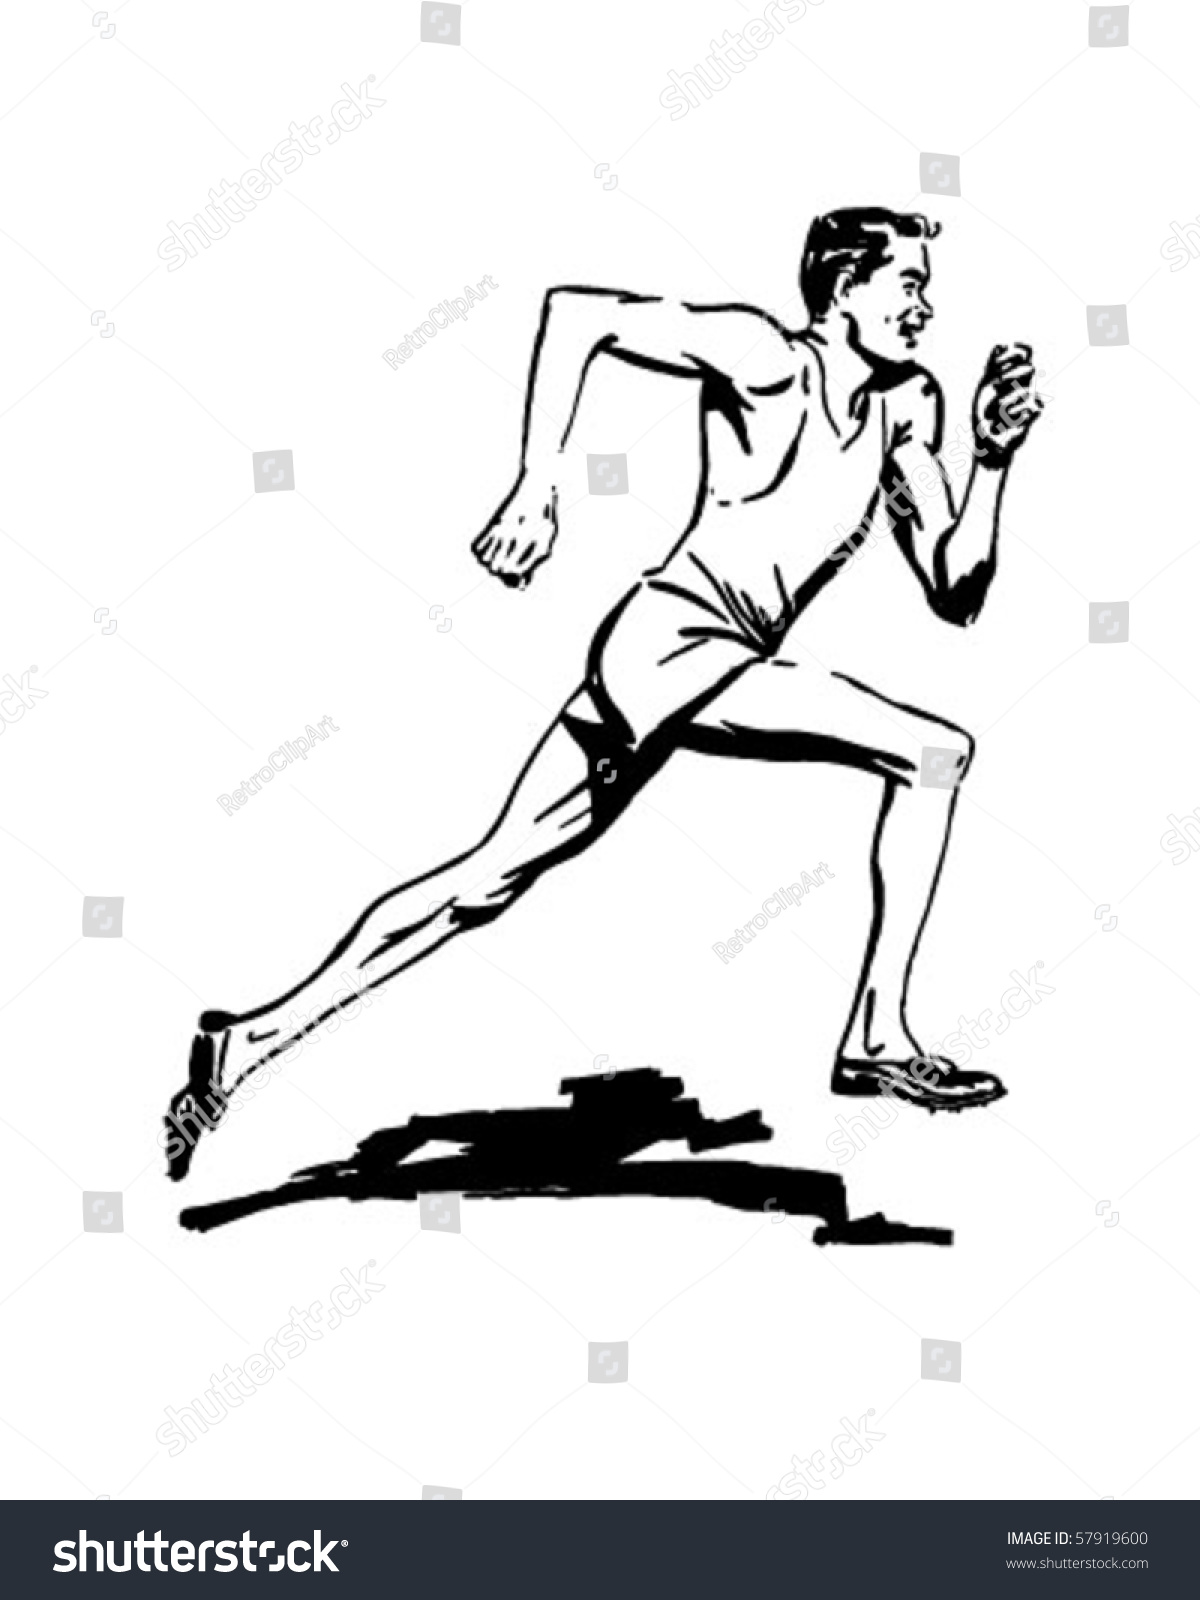 This is a graphic of Handy Track And Field Drawing